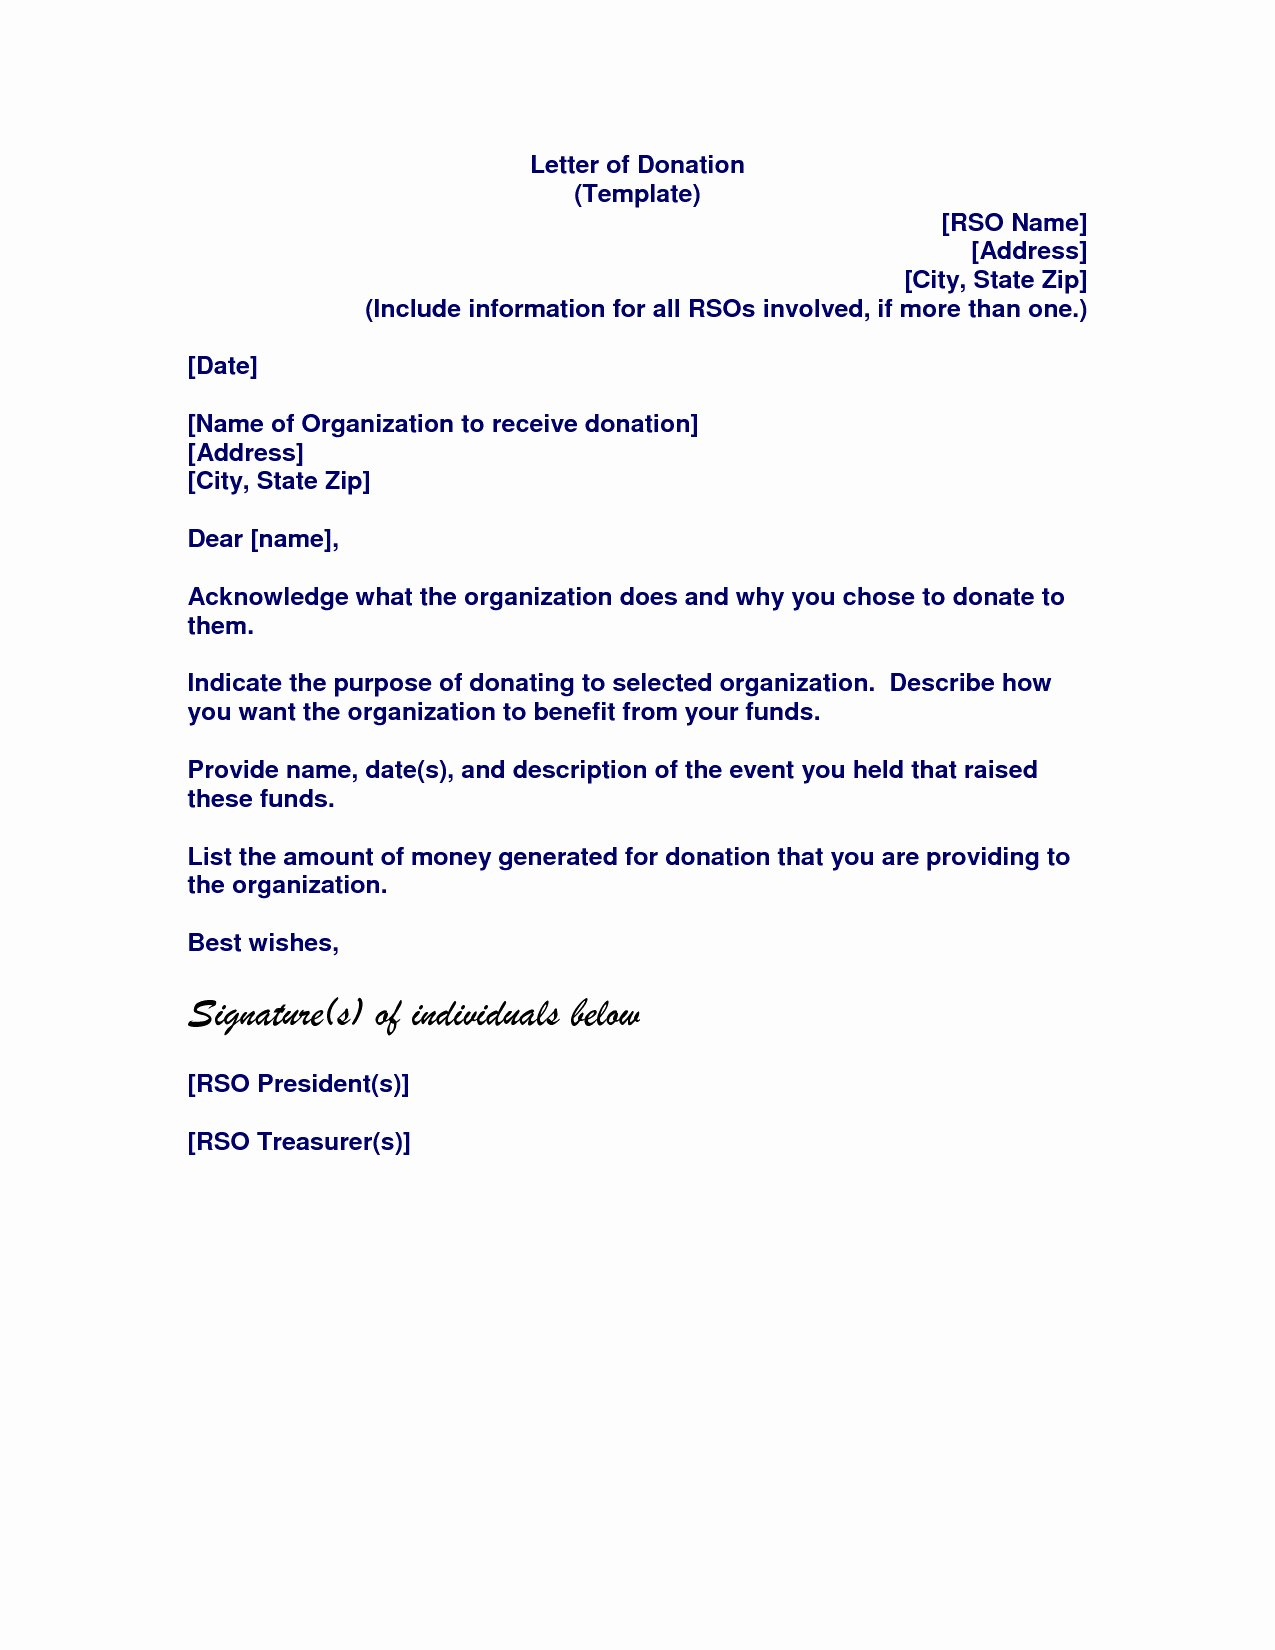 Memorial Donation Letter Template Elegant Request for Donation Letter Template Collection